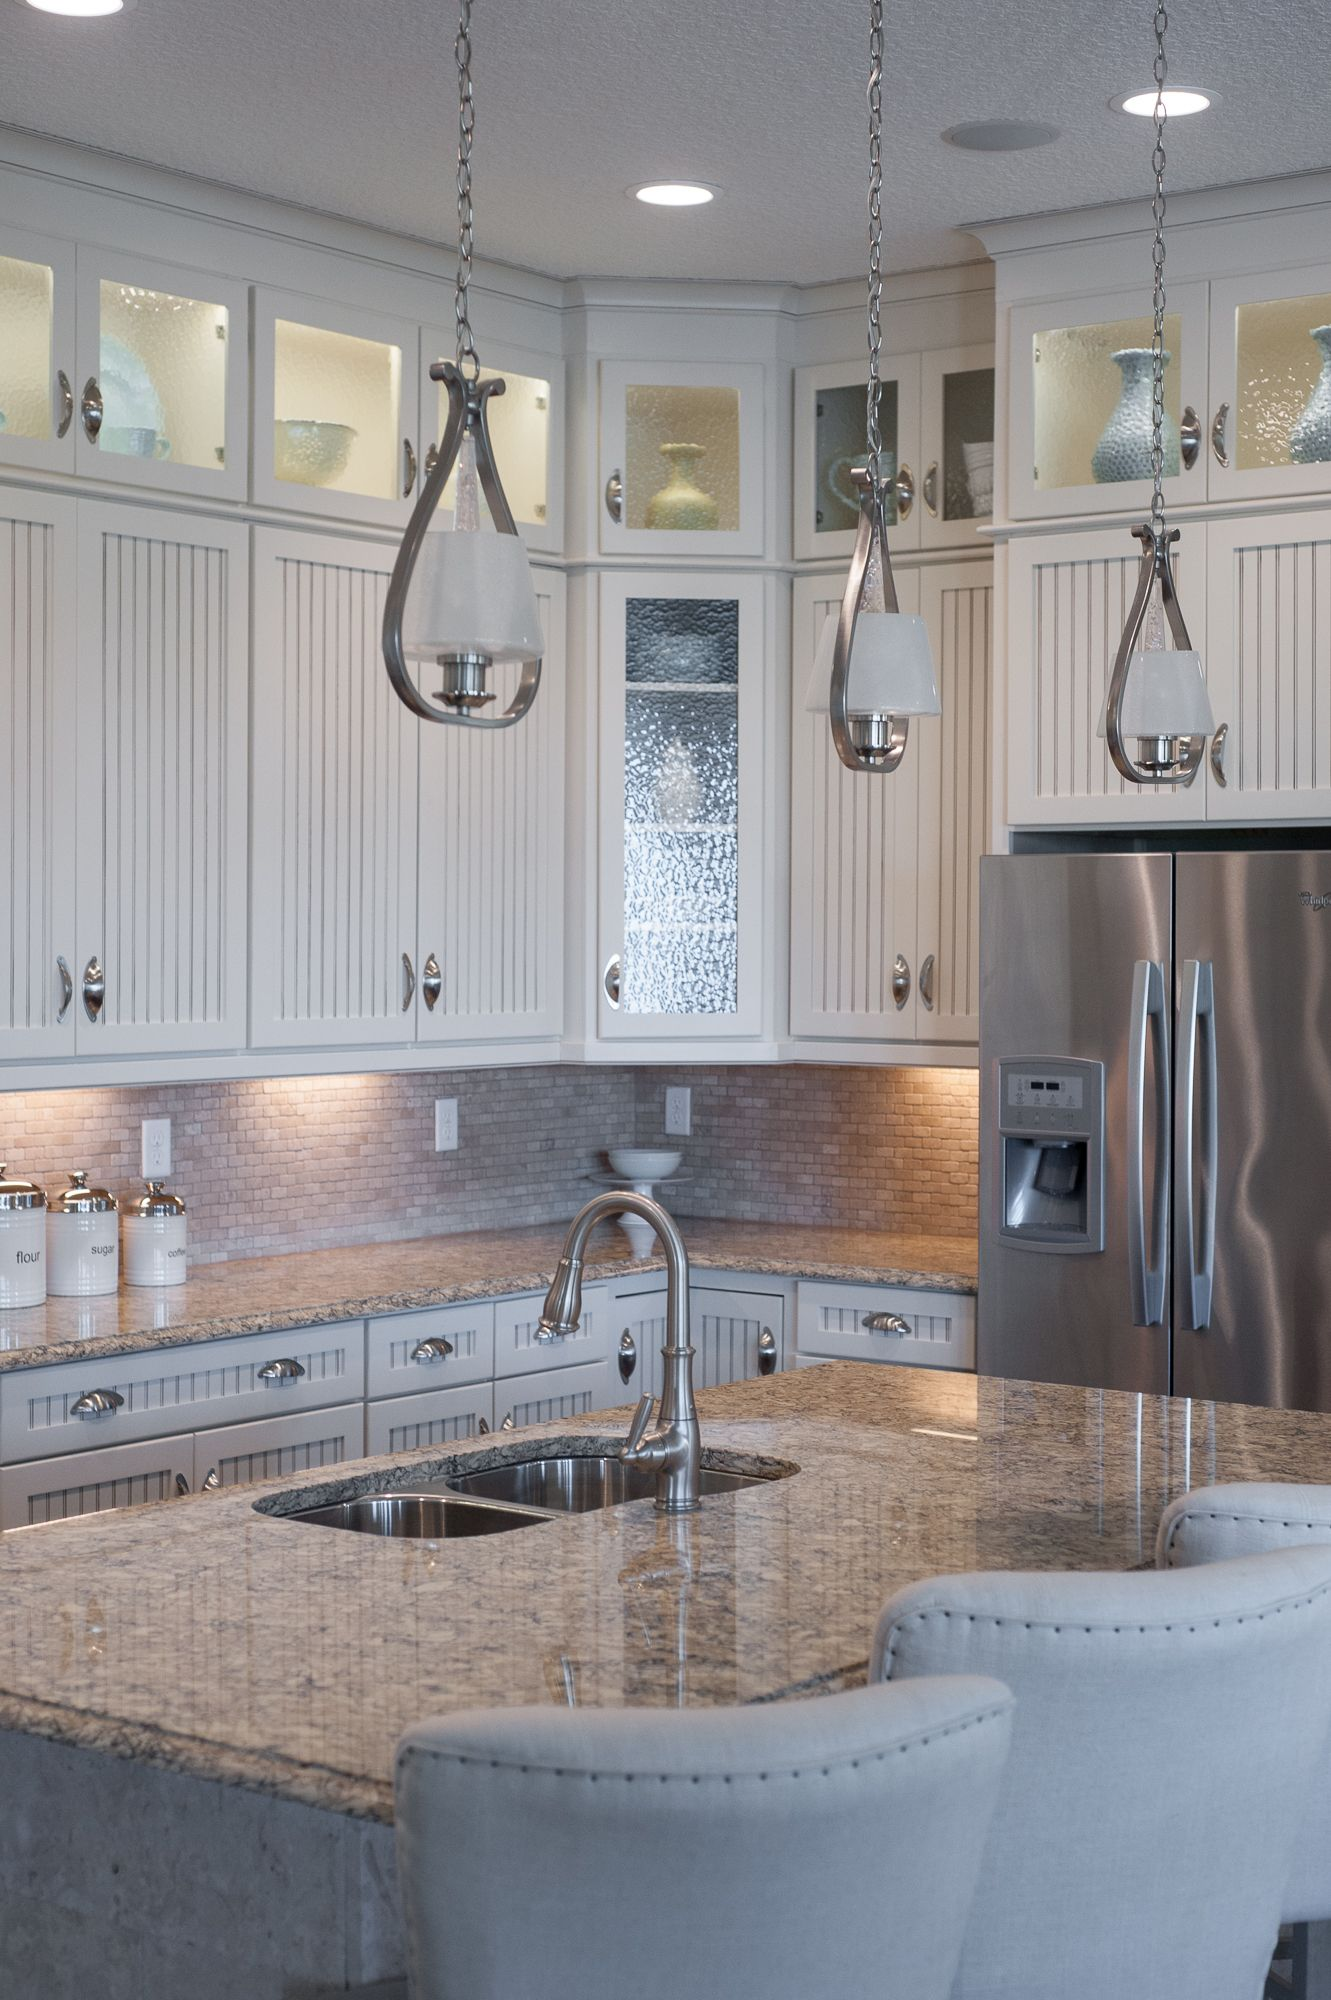 With Pendant Fixtures Recessed Lights And Under Cabinet Lights This Kitchen Has It All Progress Lighting Kitchen Worktop Under Cabinet Lights